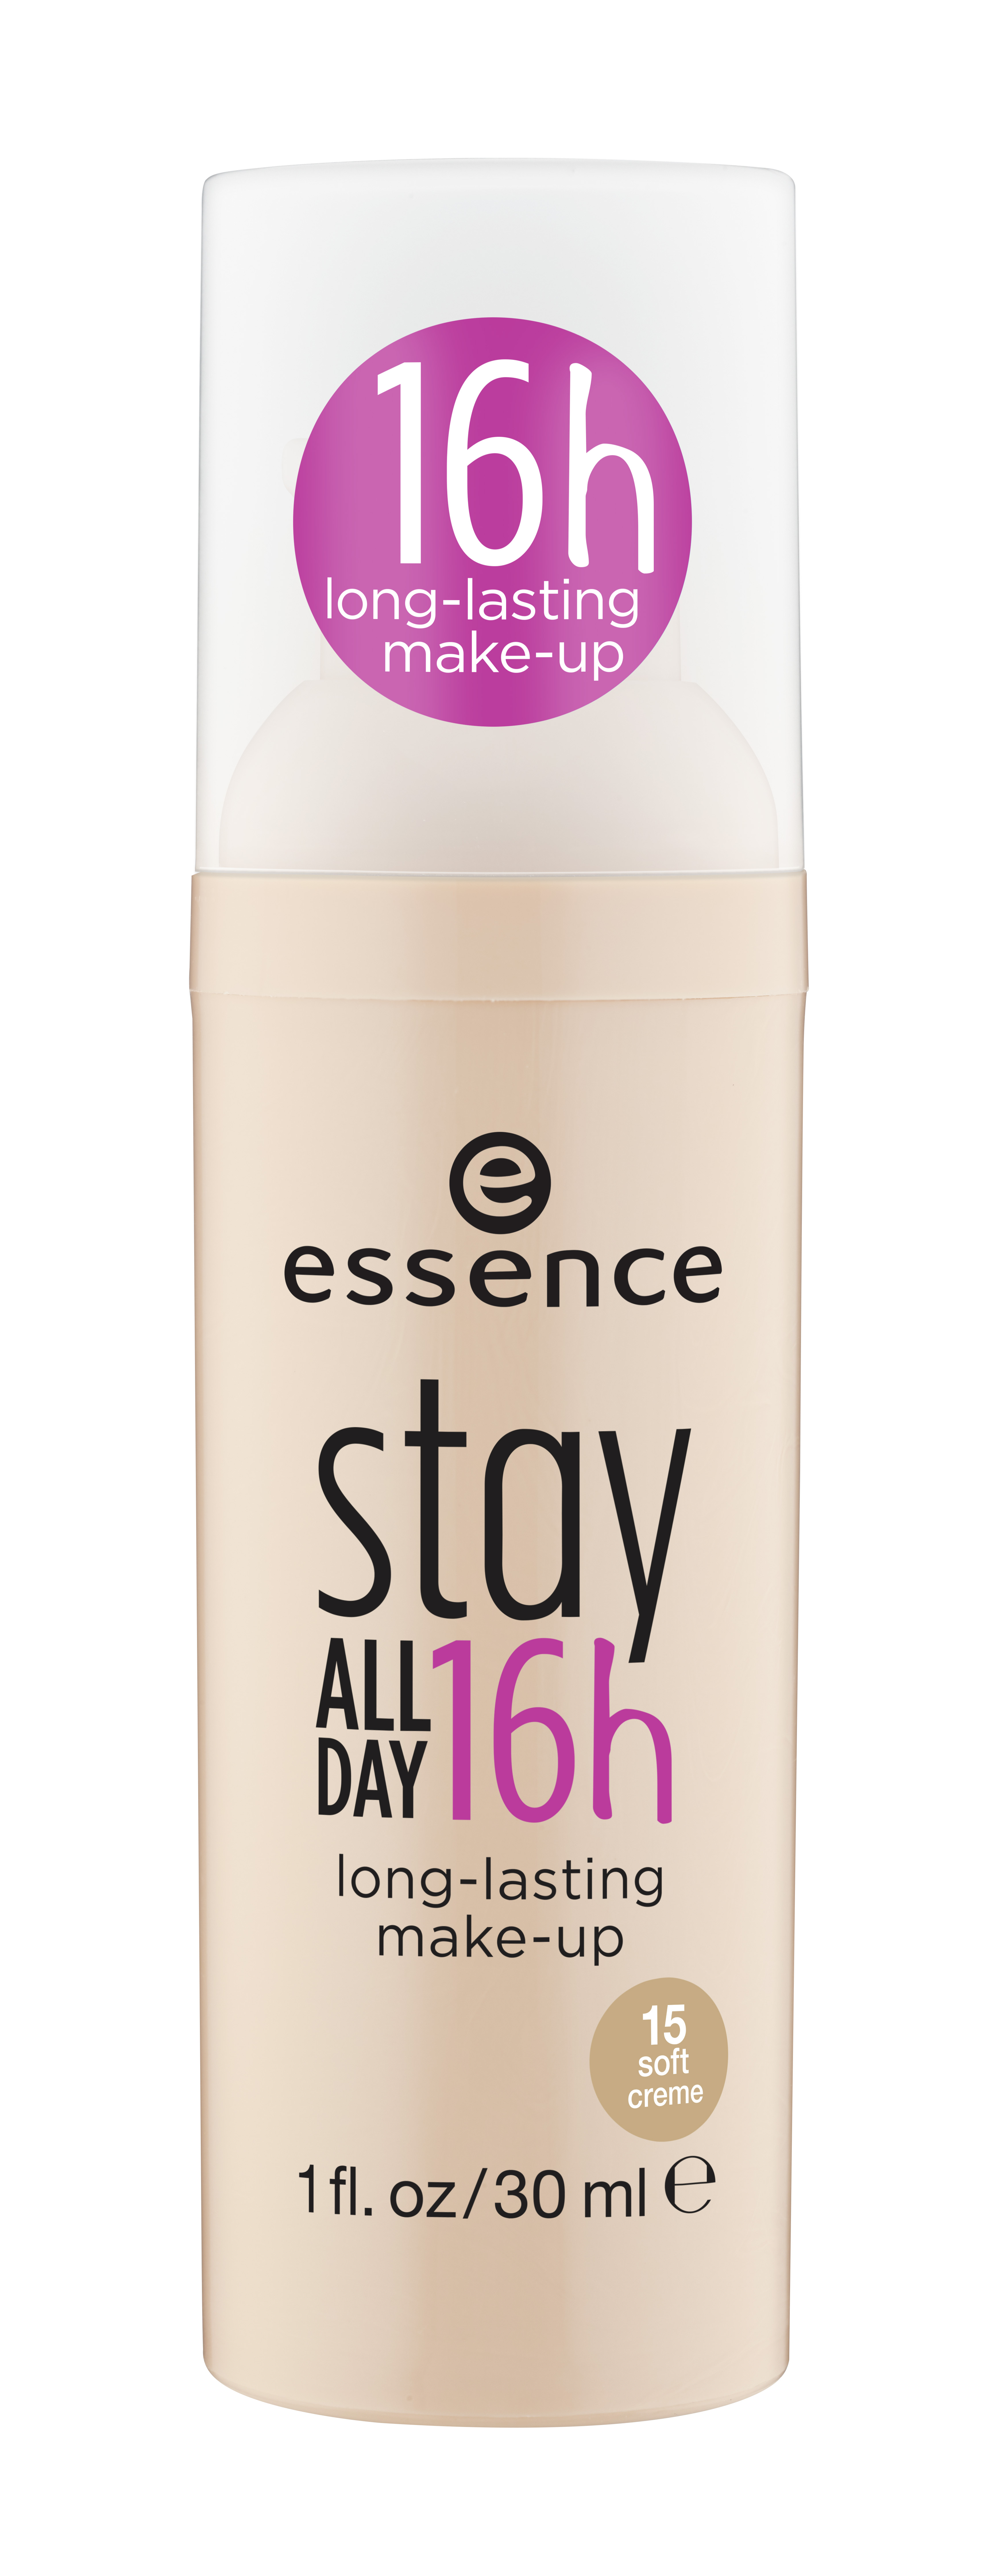 ess. stay all day 16h long-lasting make-up 15